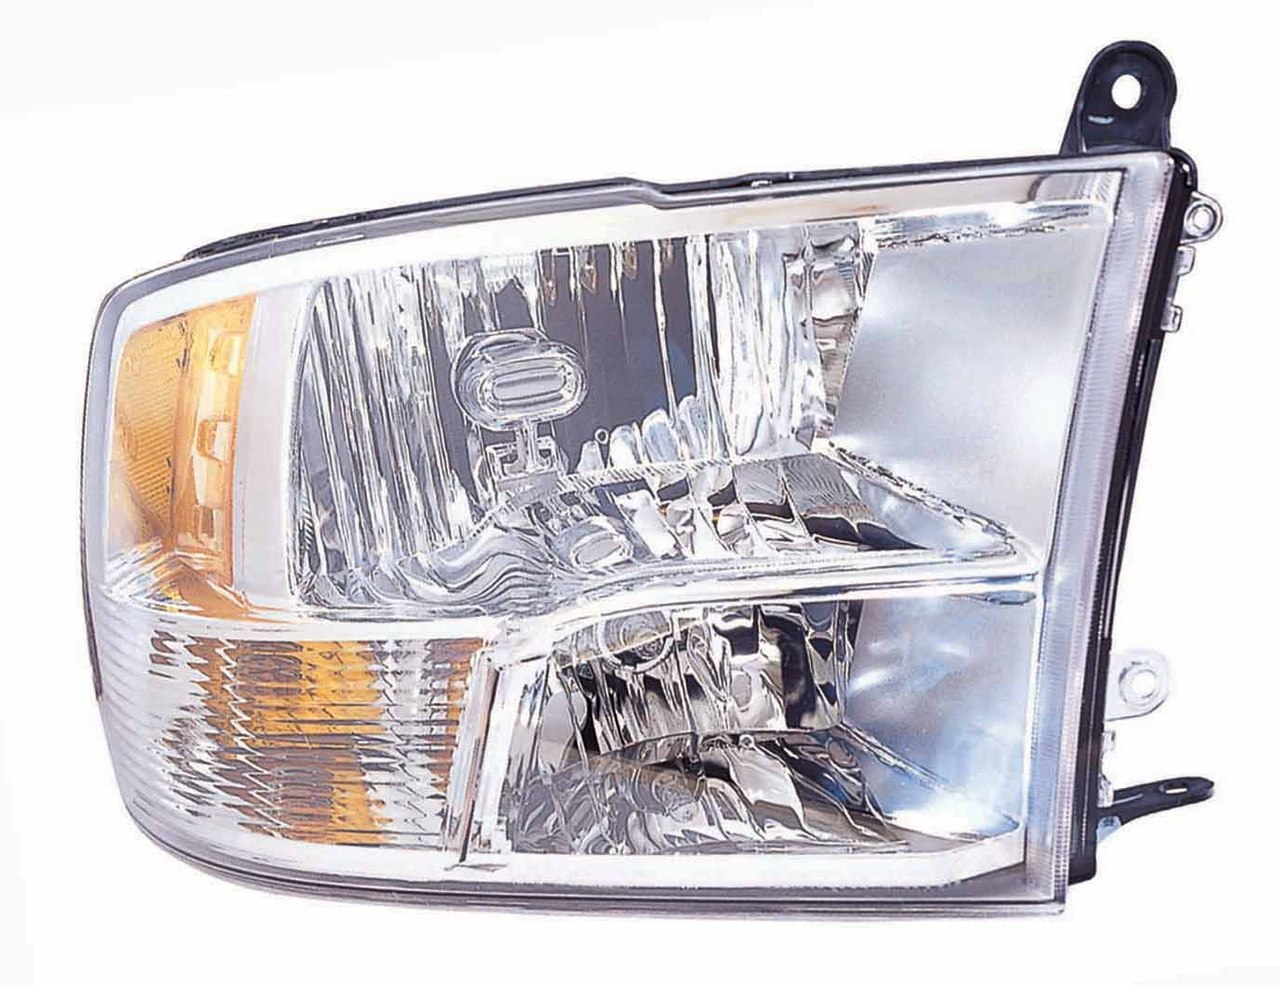 Dodge RAM 1500/2500/3500 2010 2011 2012 right passenger headlight with quad lamp (Genuine part)